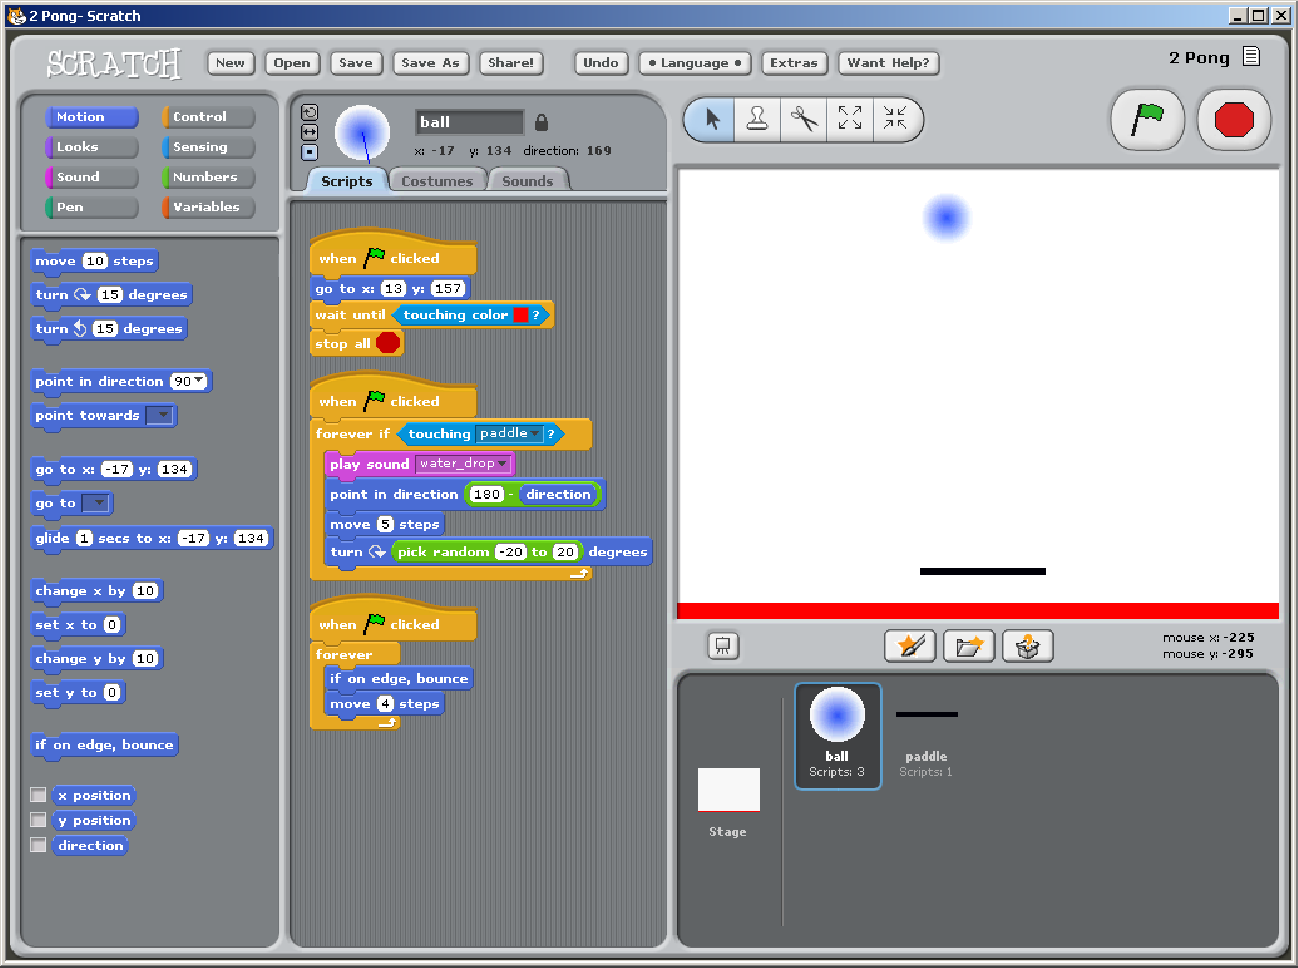 Skill Progression Demonstrated by Users in the Scratch